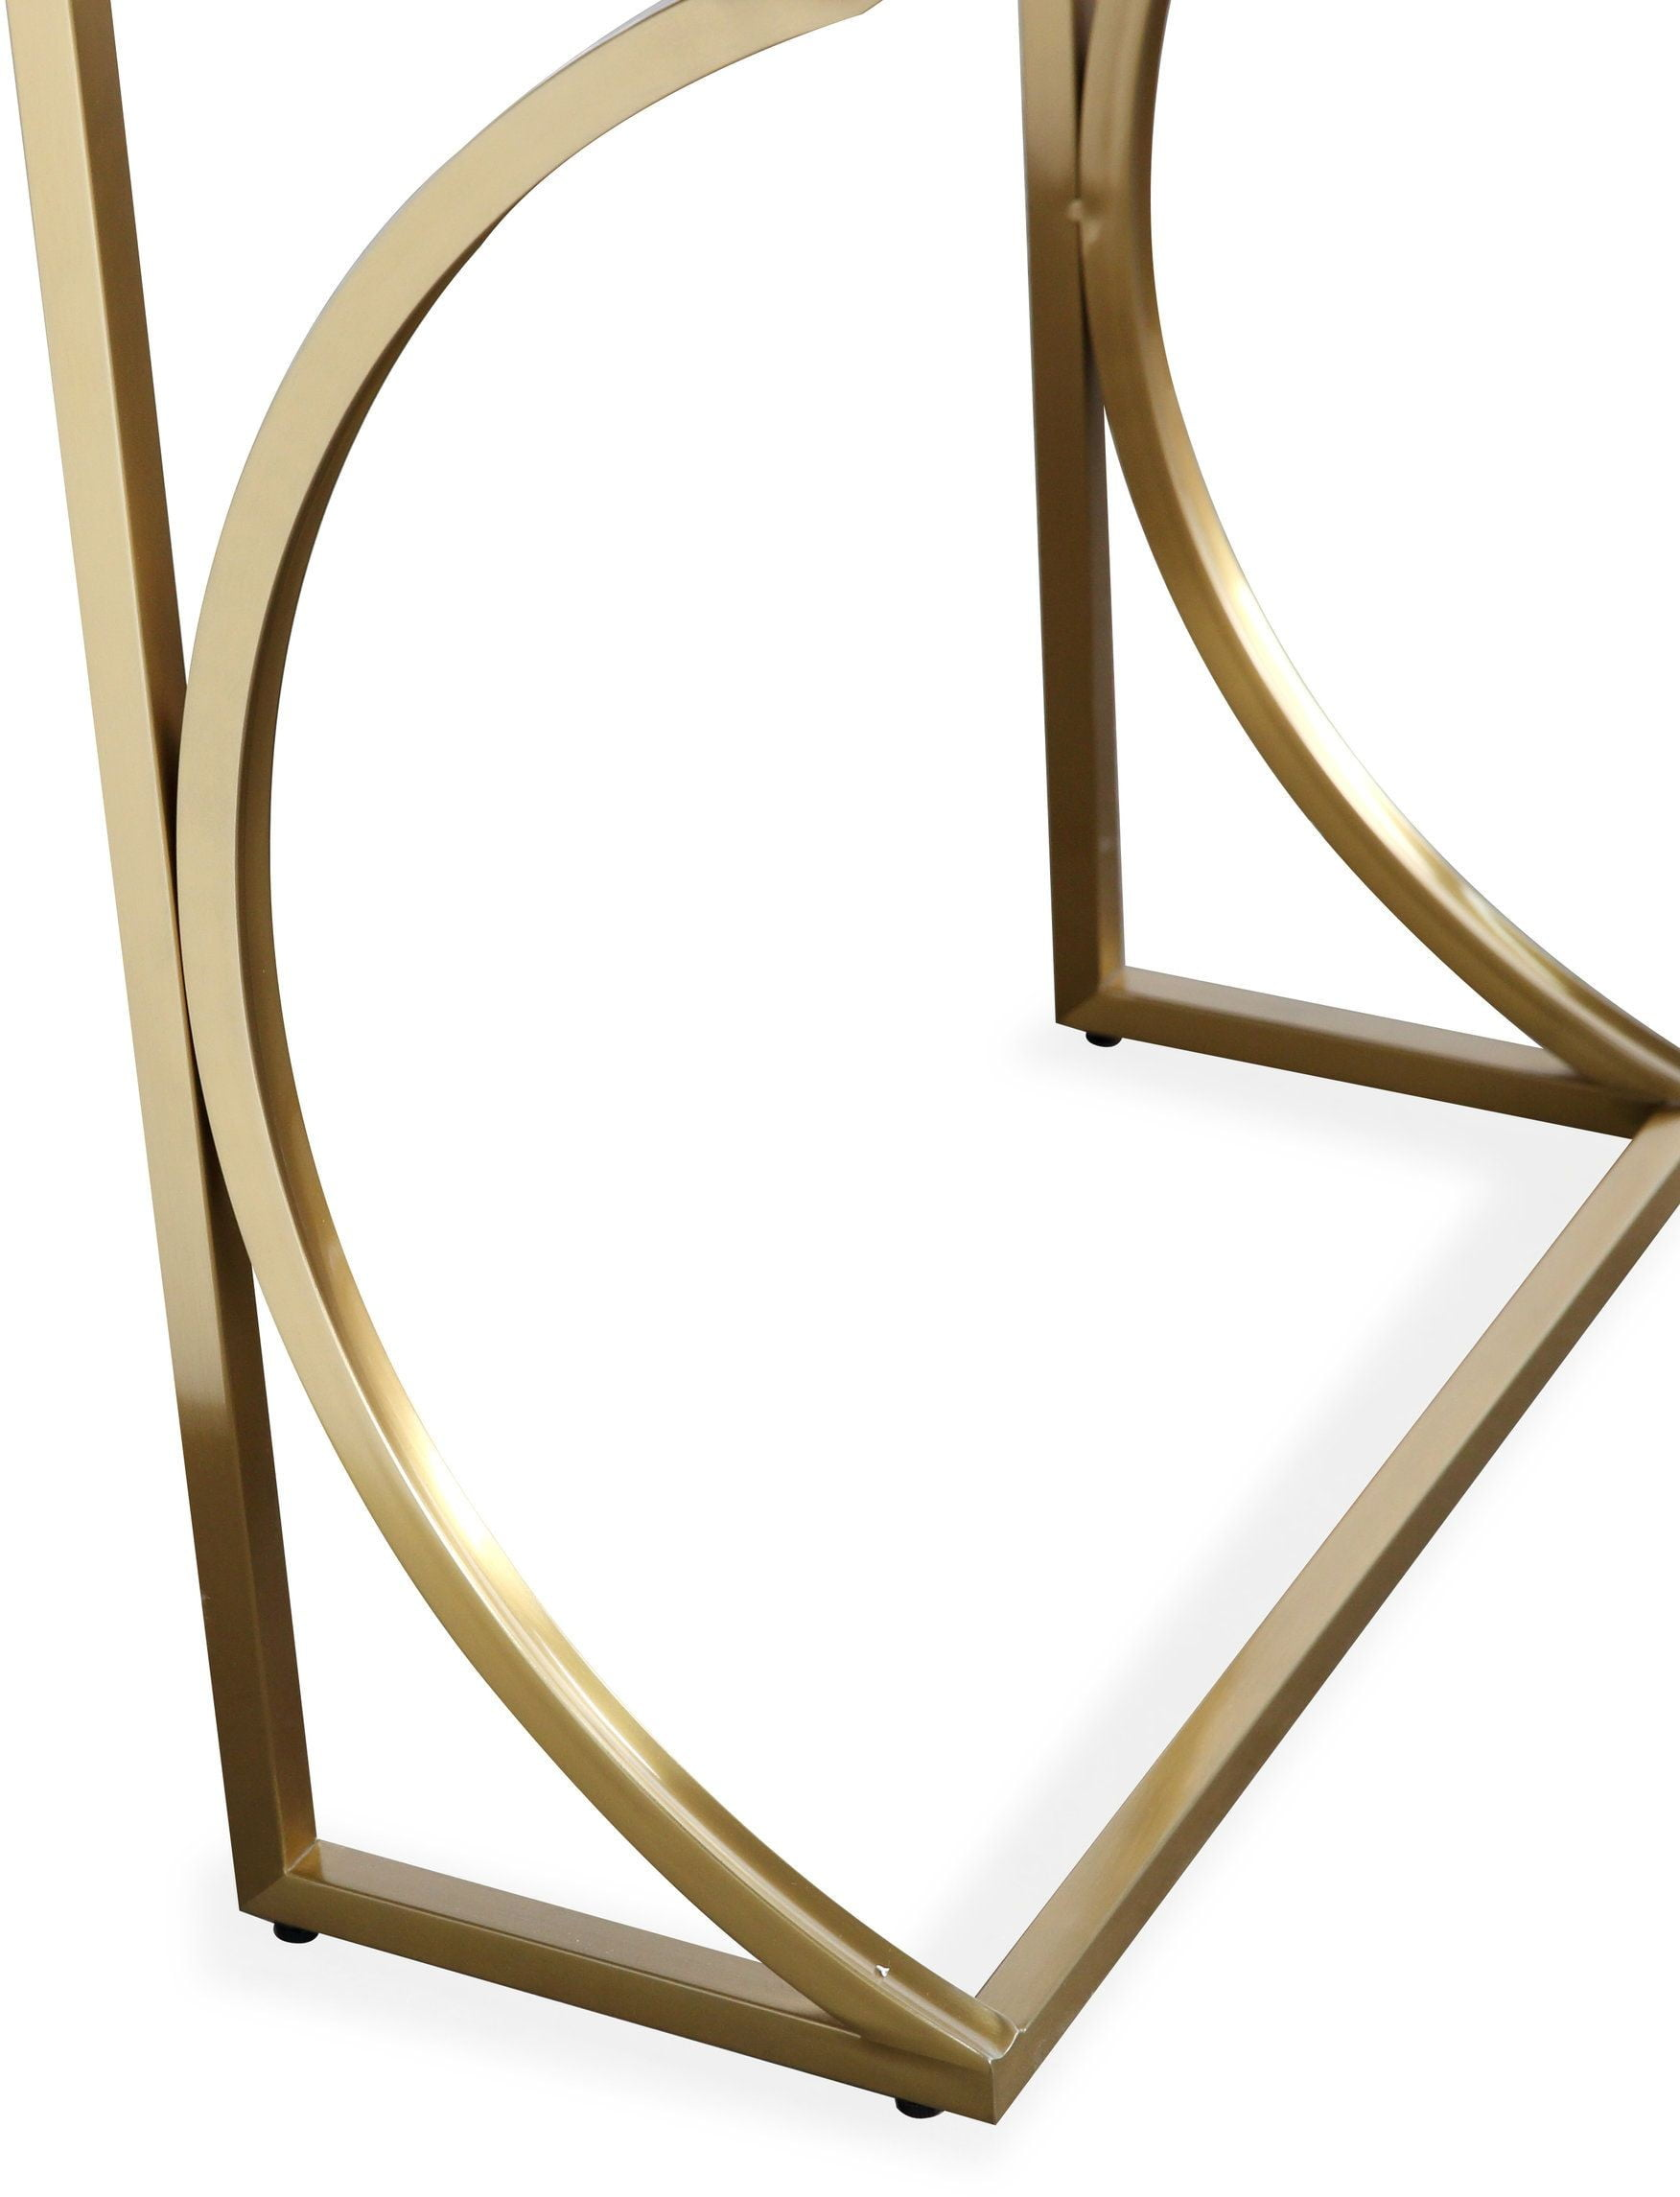 Lexie Gray and Gold Desk from TOV